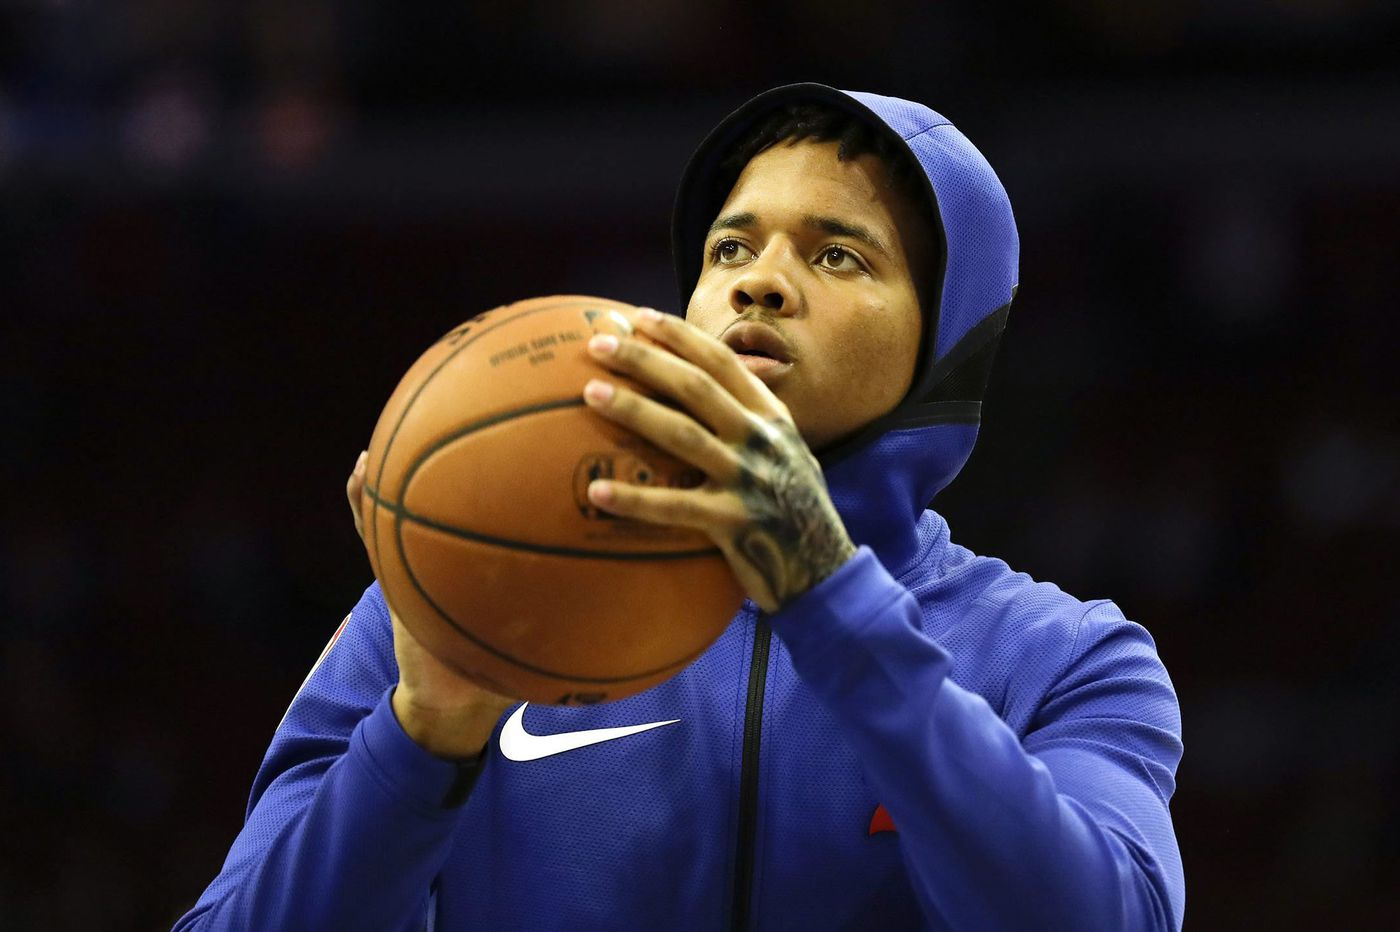 Sixers' Markelle Fultz says Pacers guard and fellow DeMatha grad Victor Oladipo is 'a big brother to me'